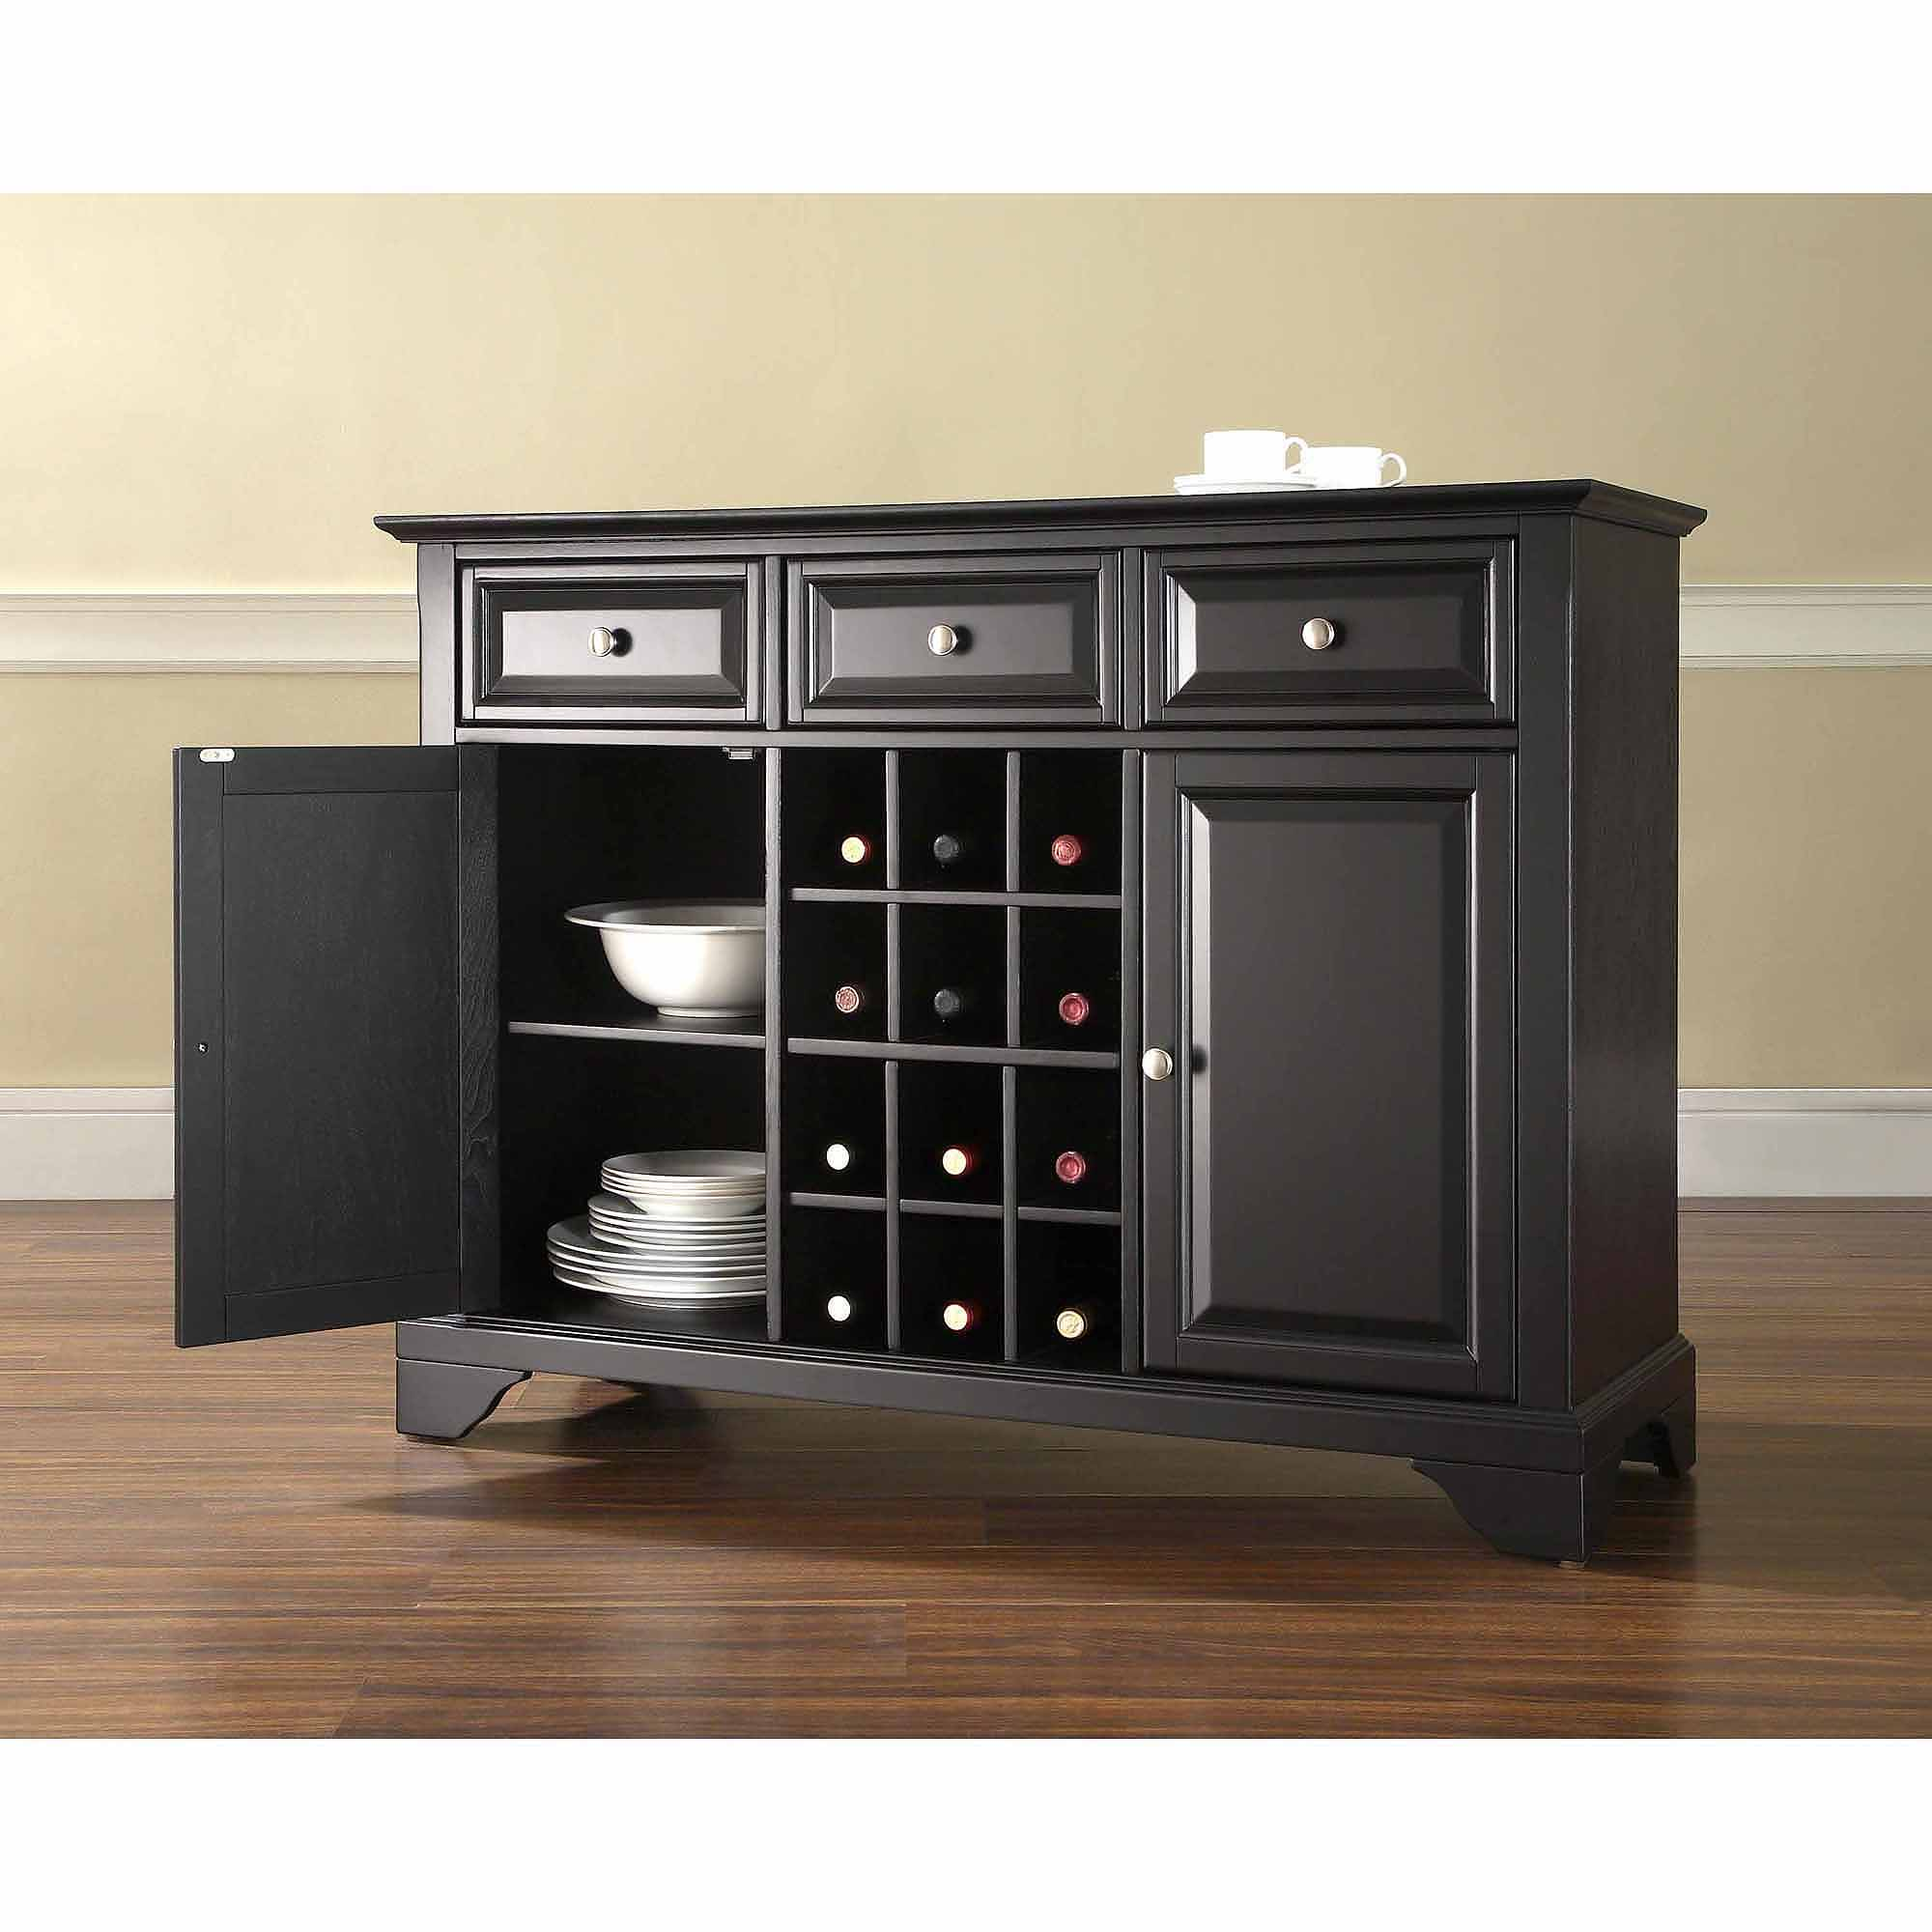 Crosley Furniture LaFayette Buffet Server and Sideboard Cabinet with Wine Storage by Generic